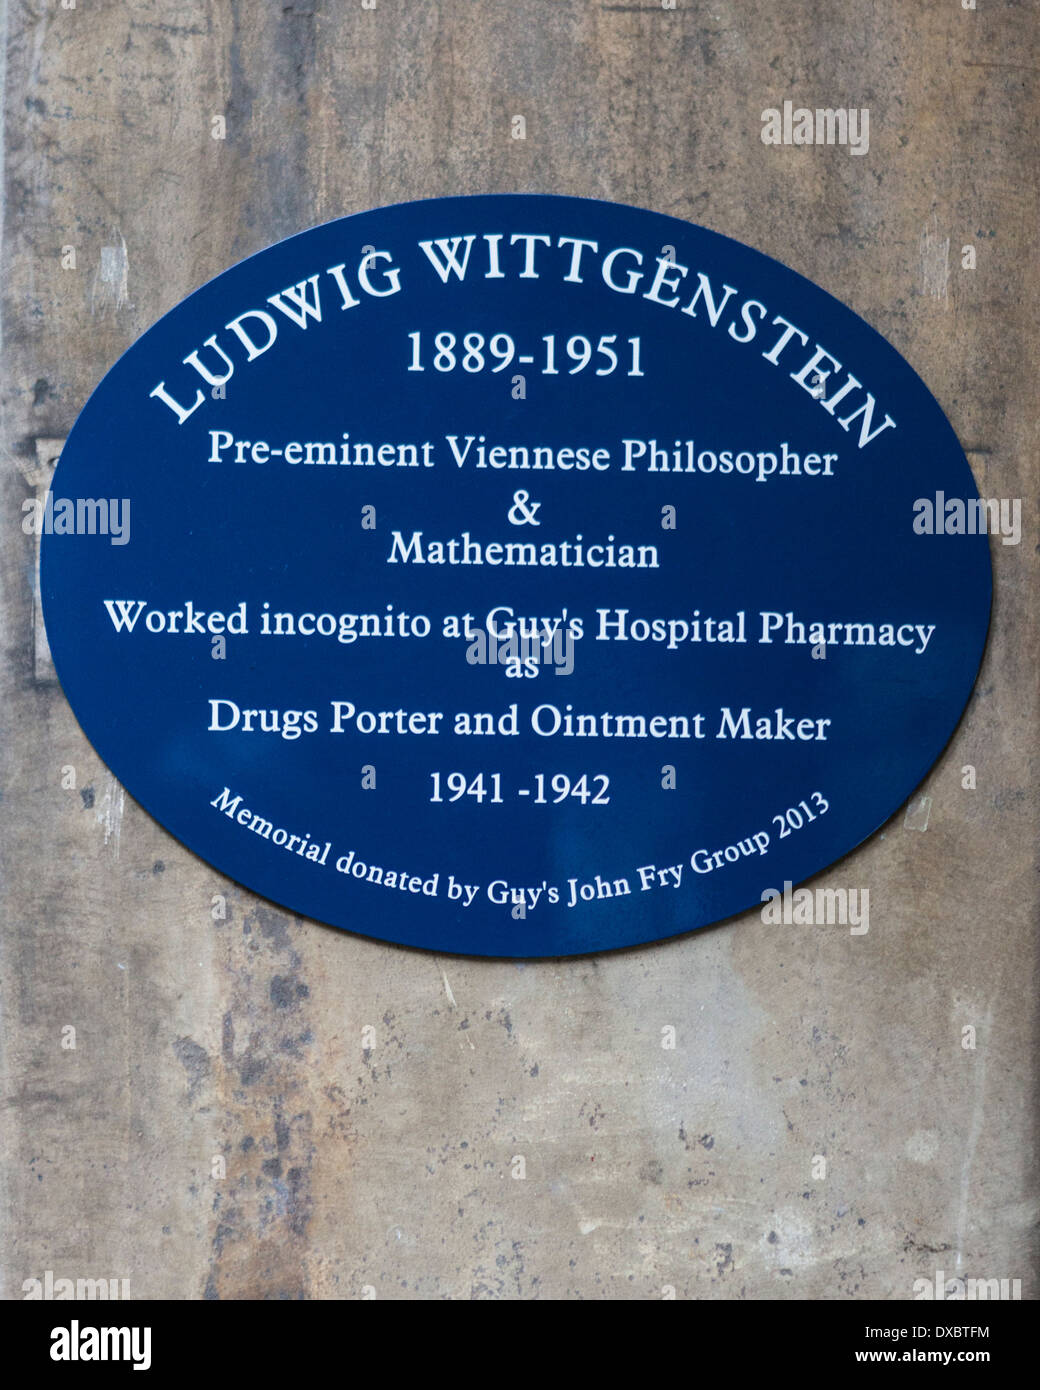 Ludwig Wittgenstein Blue Plaque Guy's Campus KCL King's College London, UK - Stock Image